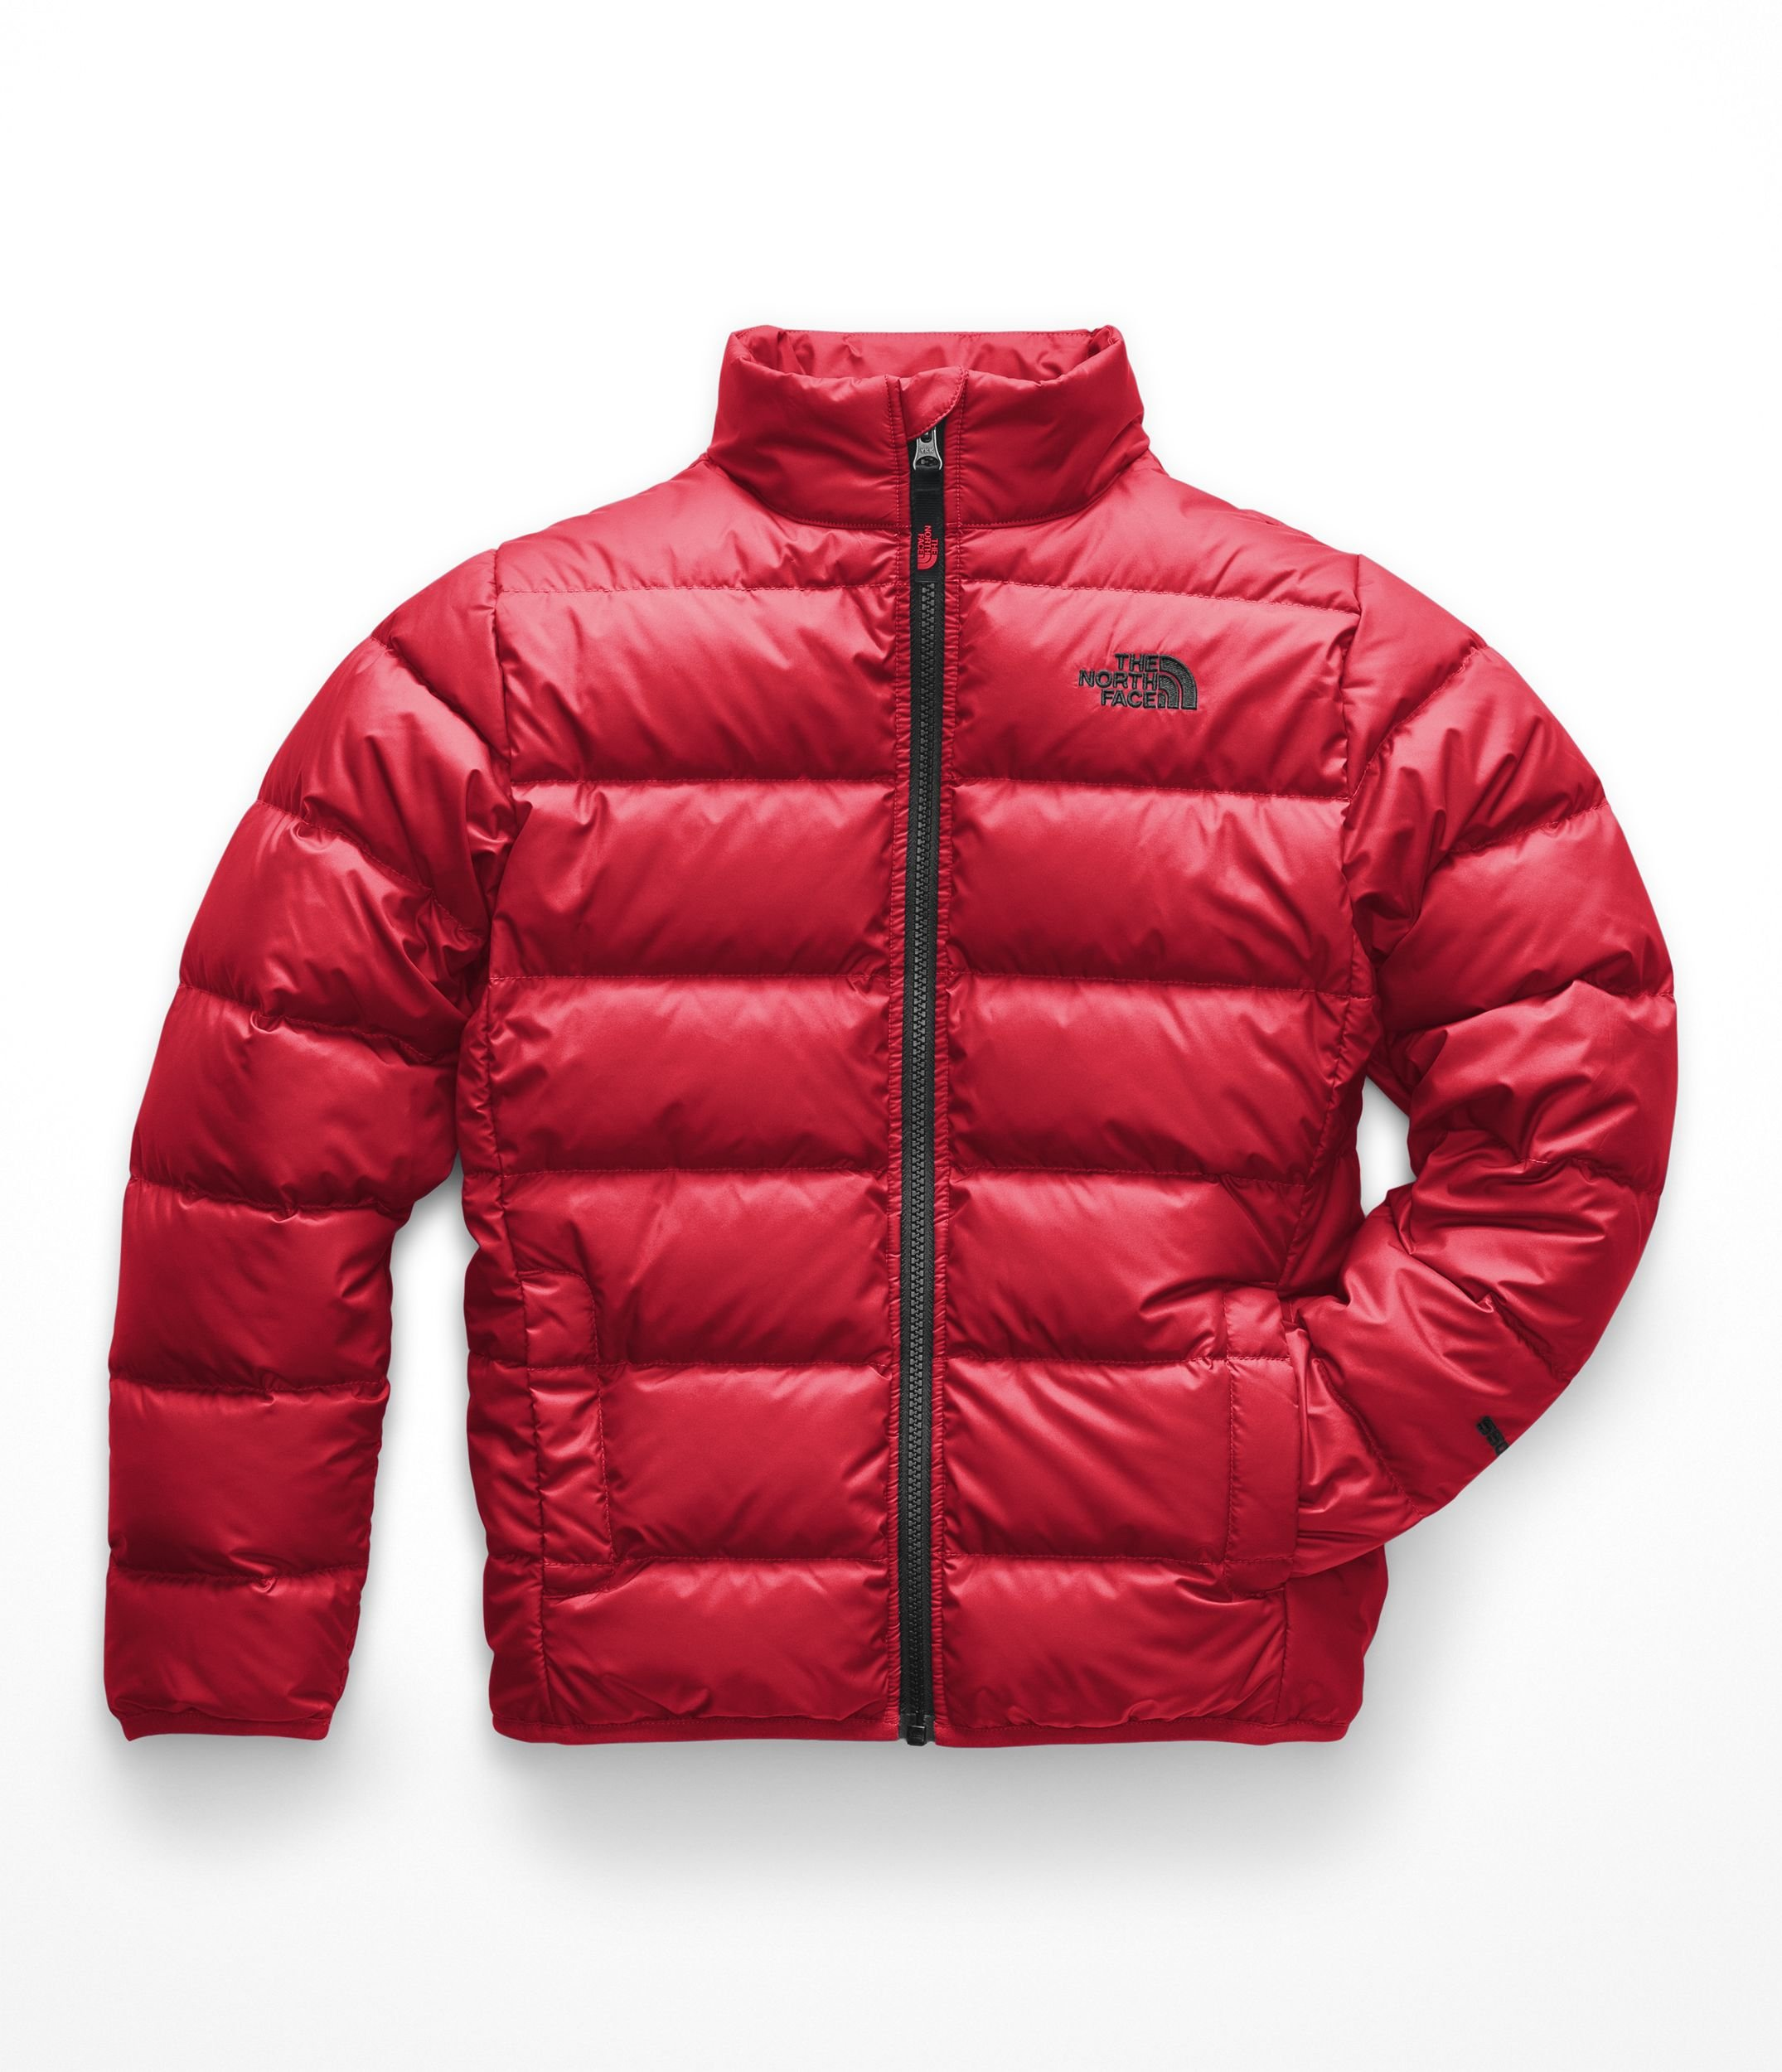 The North Face Boy's Andes Jacket - TNF Red & TNF Black - M by The North Face